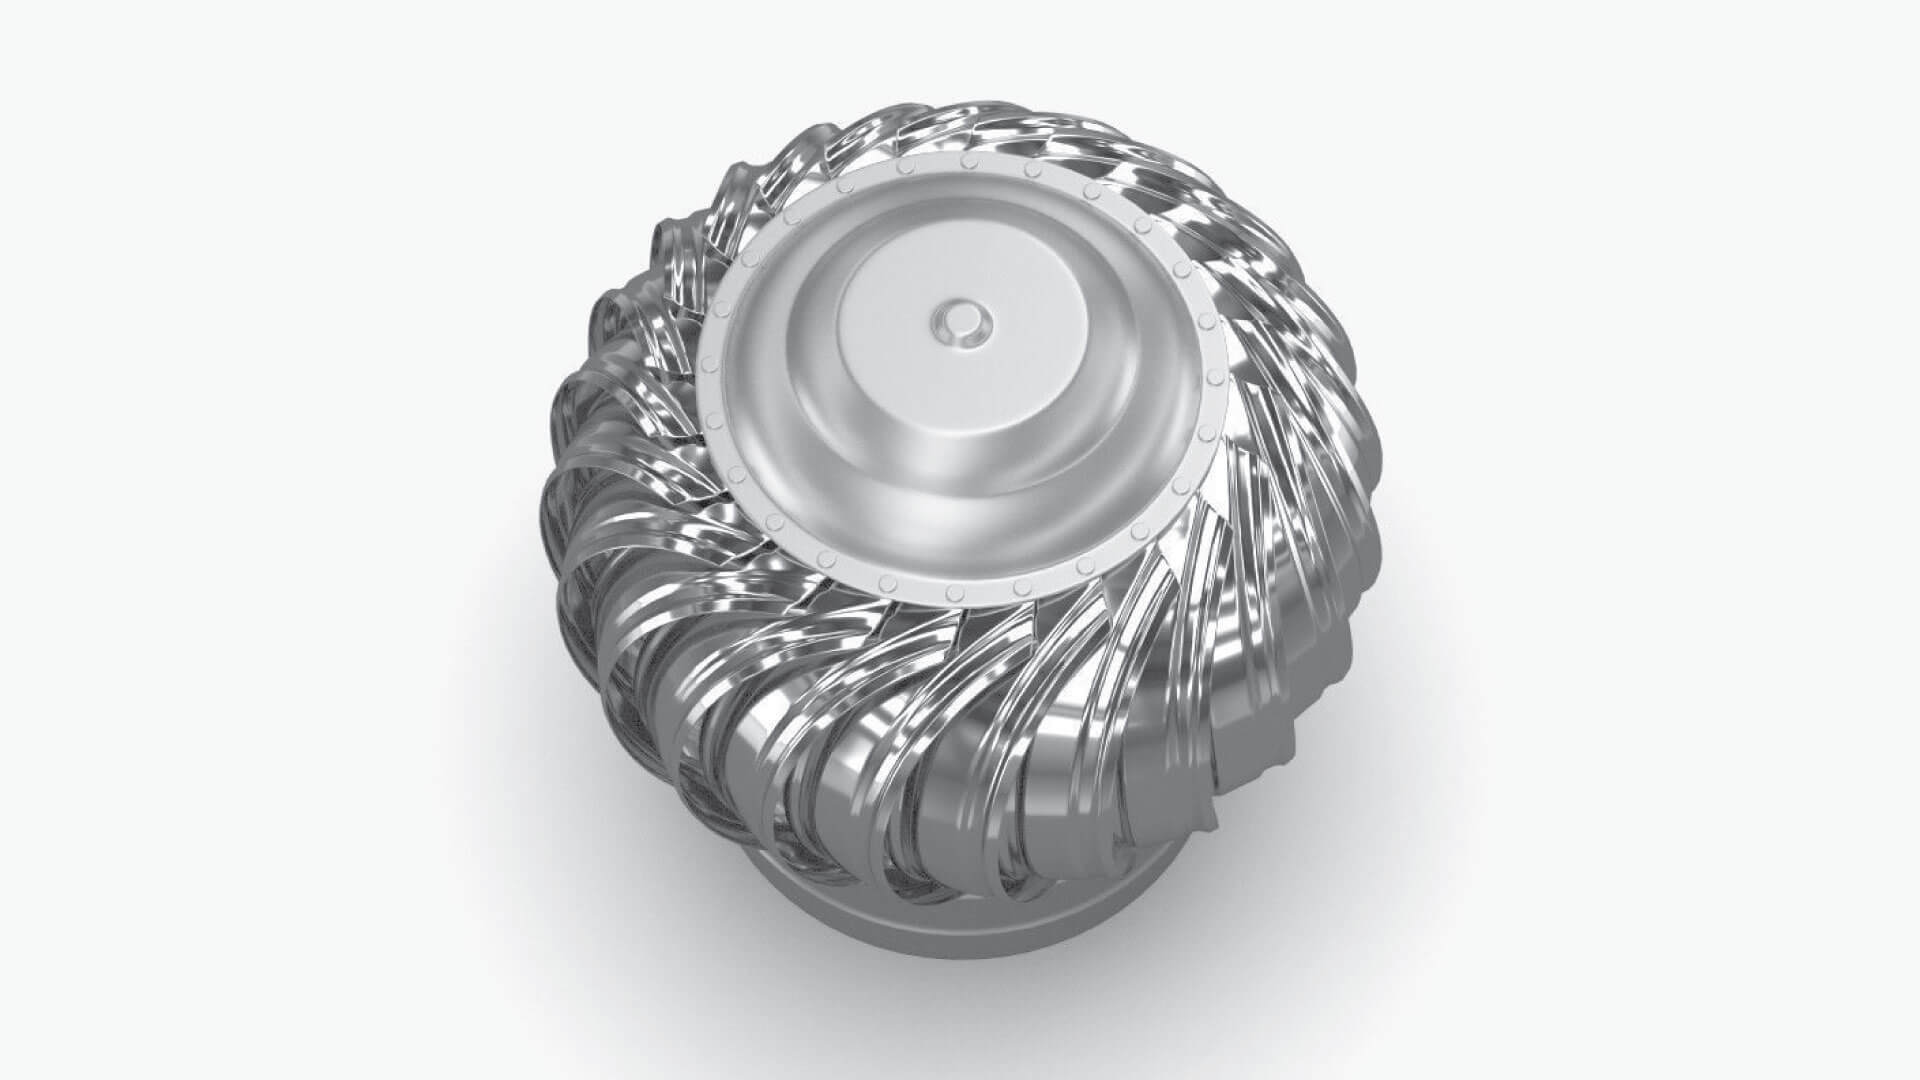 Whirly Bird Installation Cost What You Need To Know